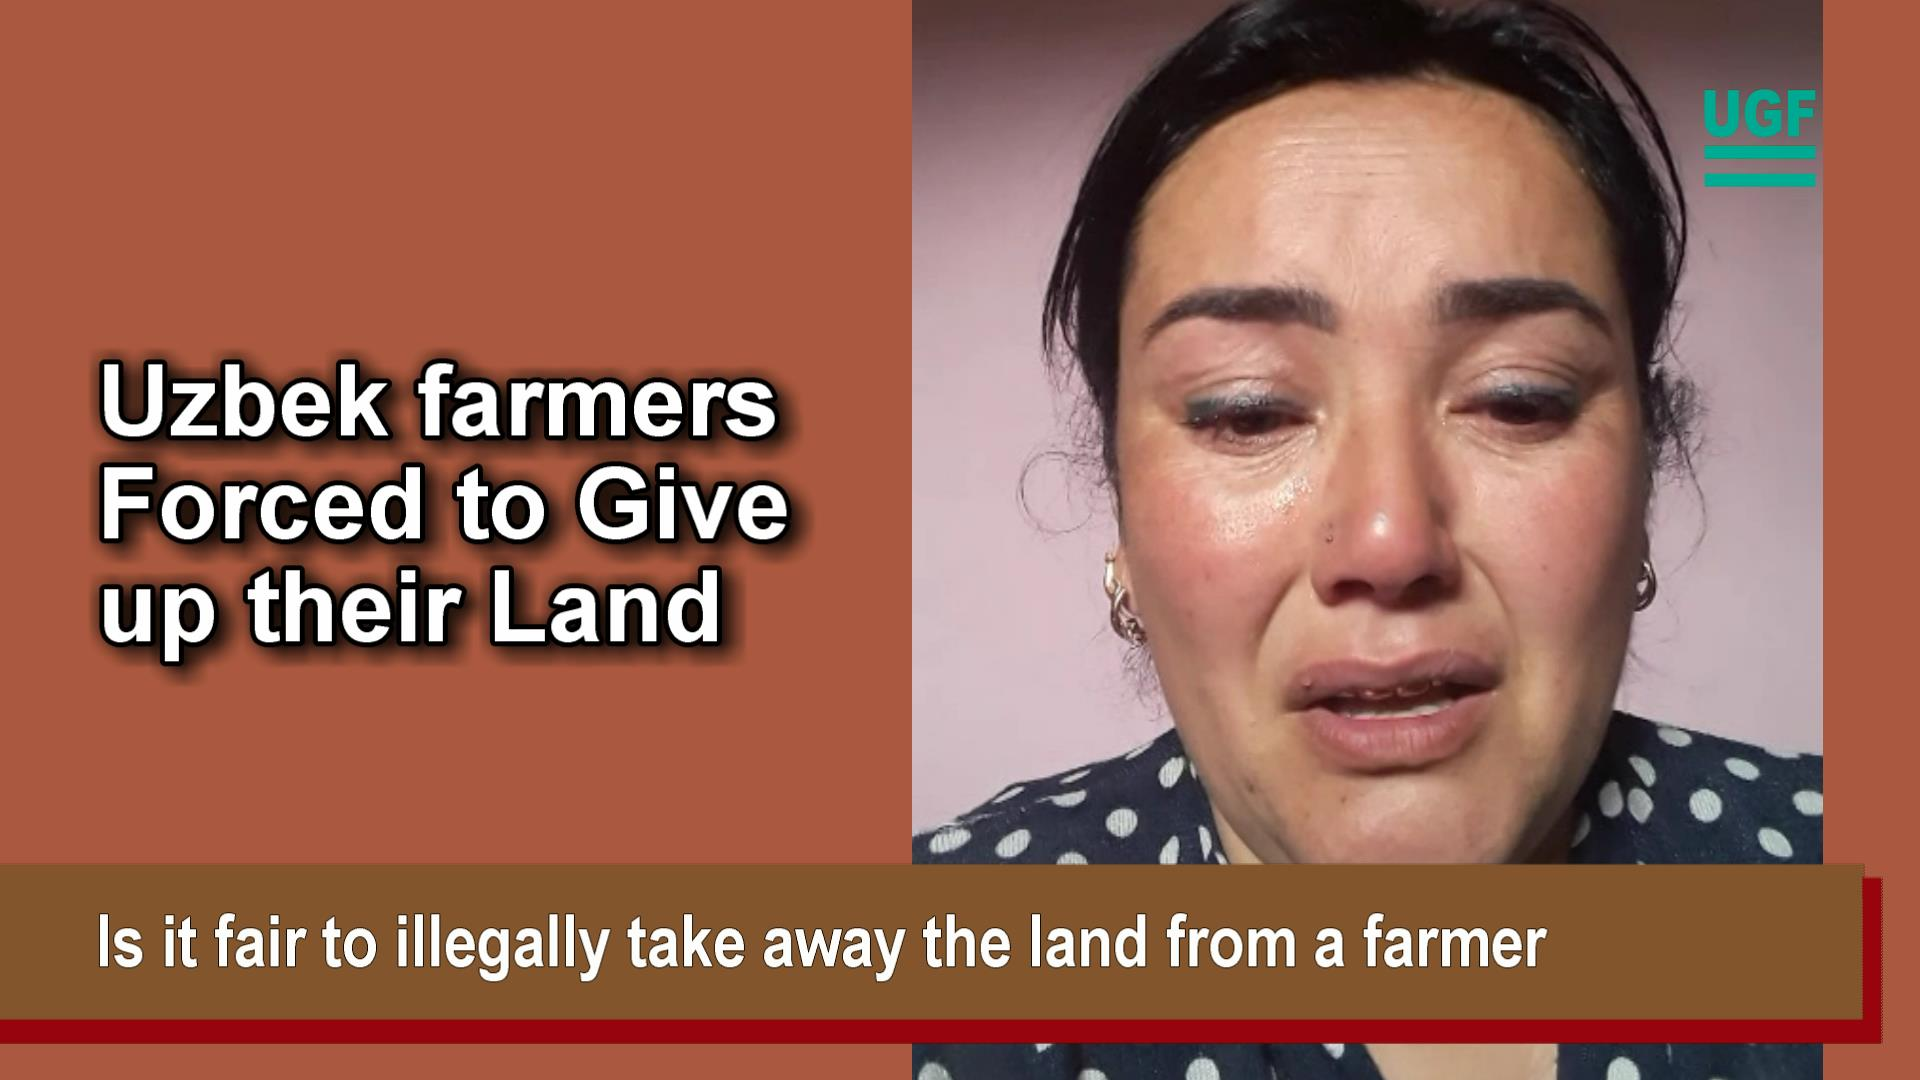 Uzbek Farmers Forced to Give up their Land